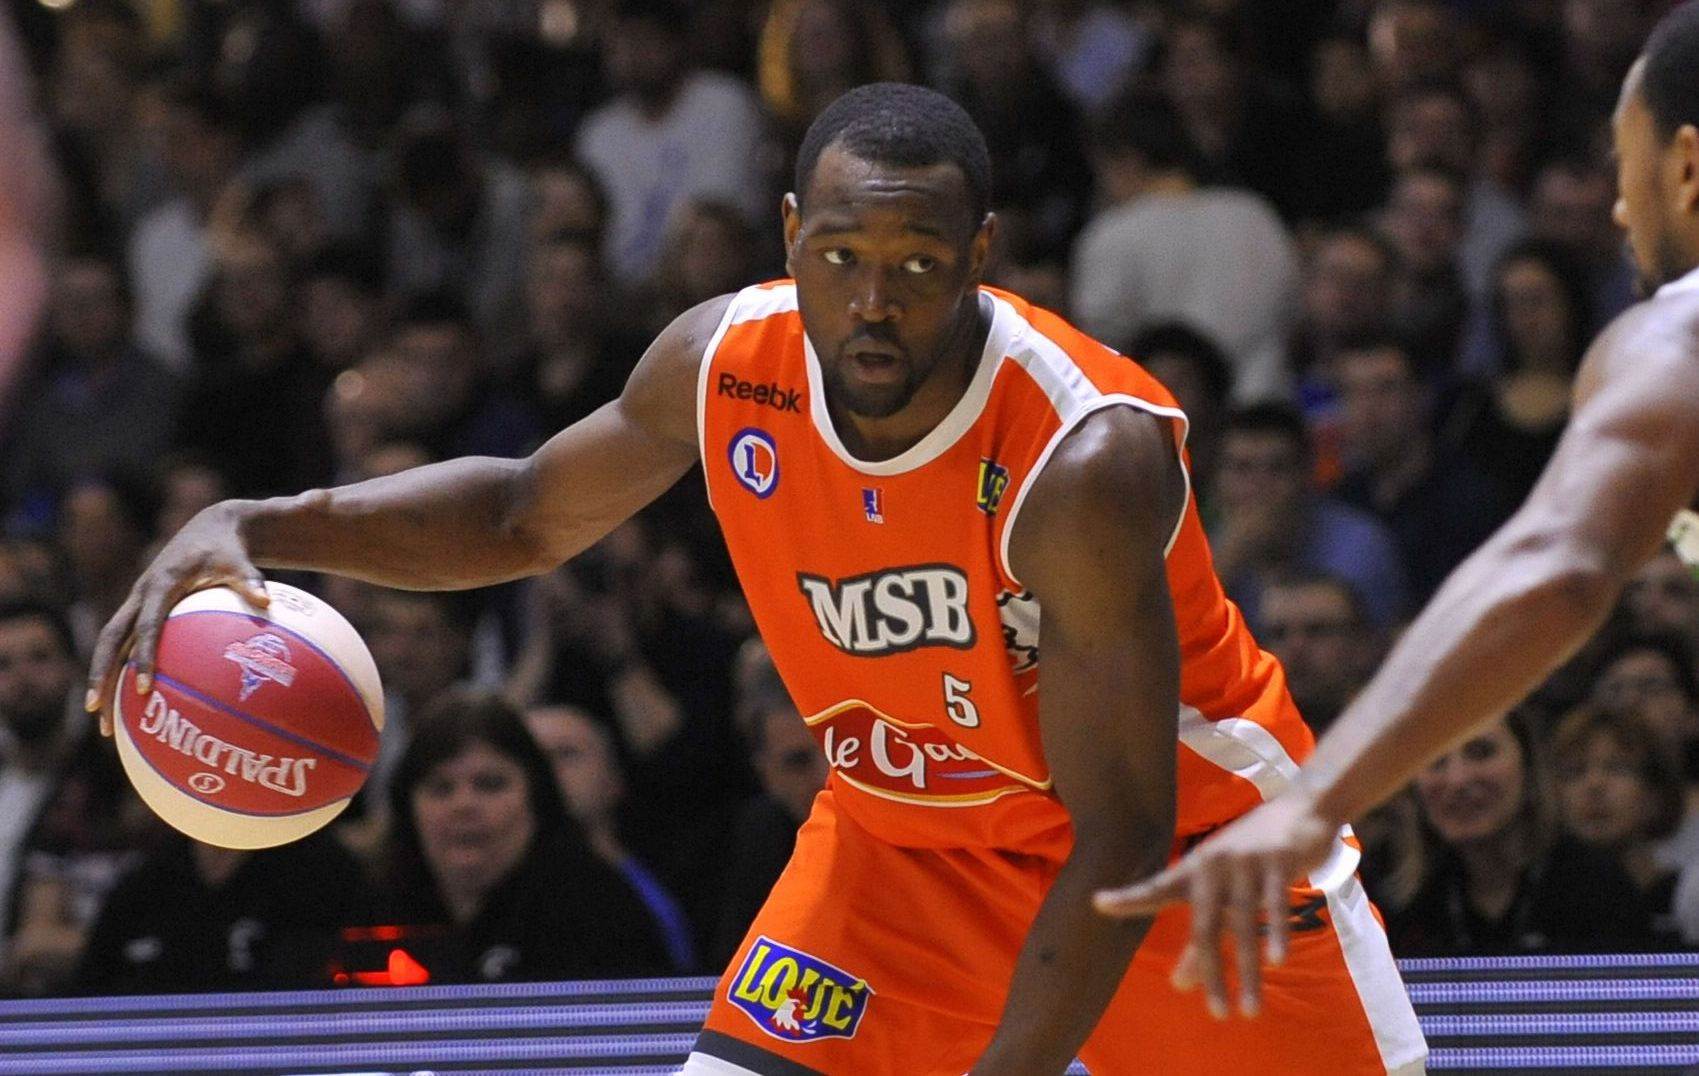 pro a match msb le mans vs cholet basket en direct streaming sur sport partir de 20h30. Black Bedroom Furniture Sets. Home Design Ideas